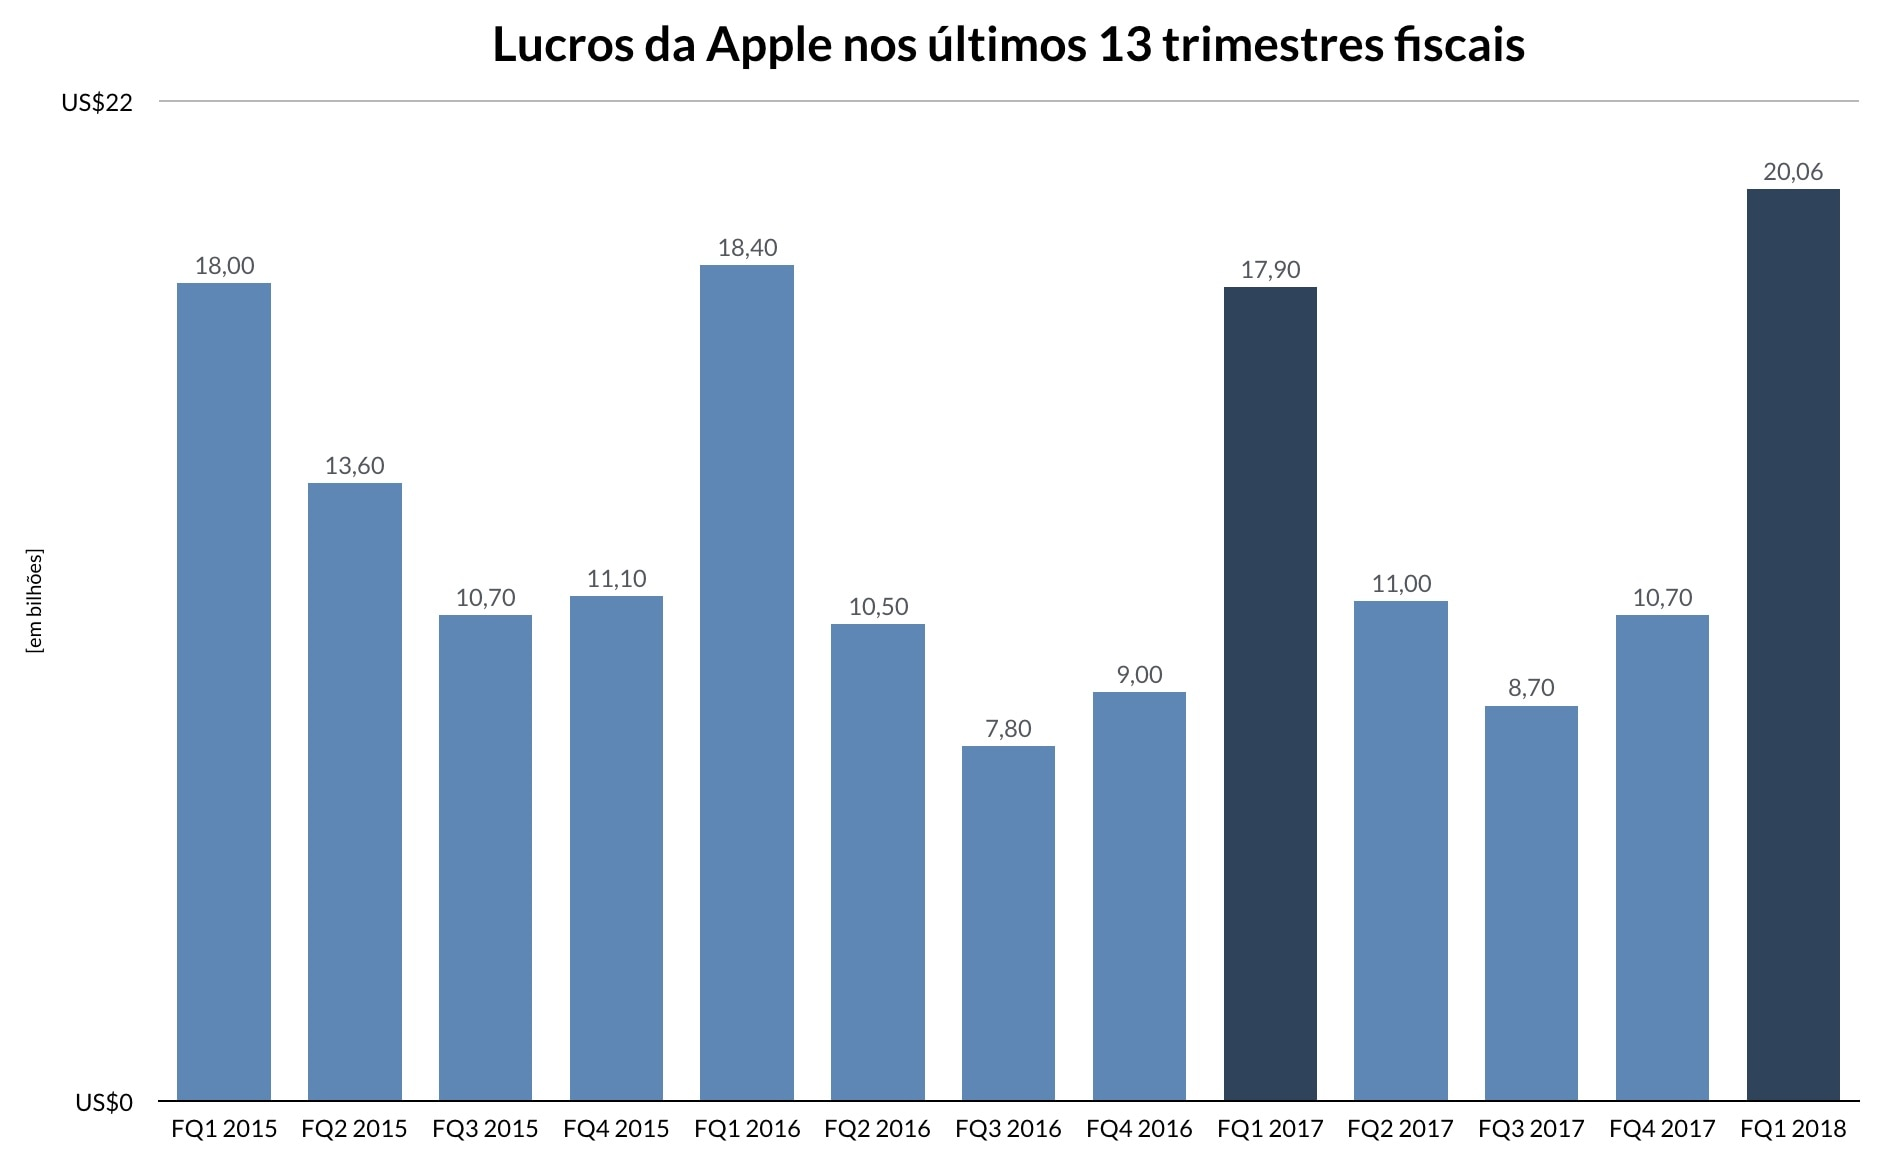 Números do primeiro trimestre fiscal da Apple